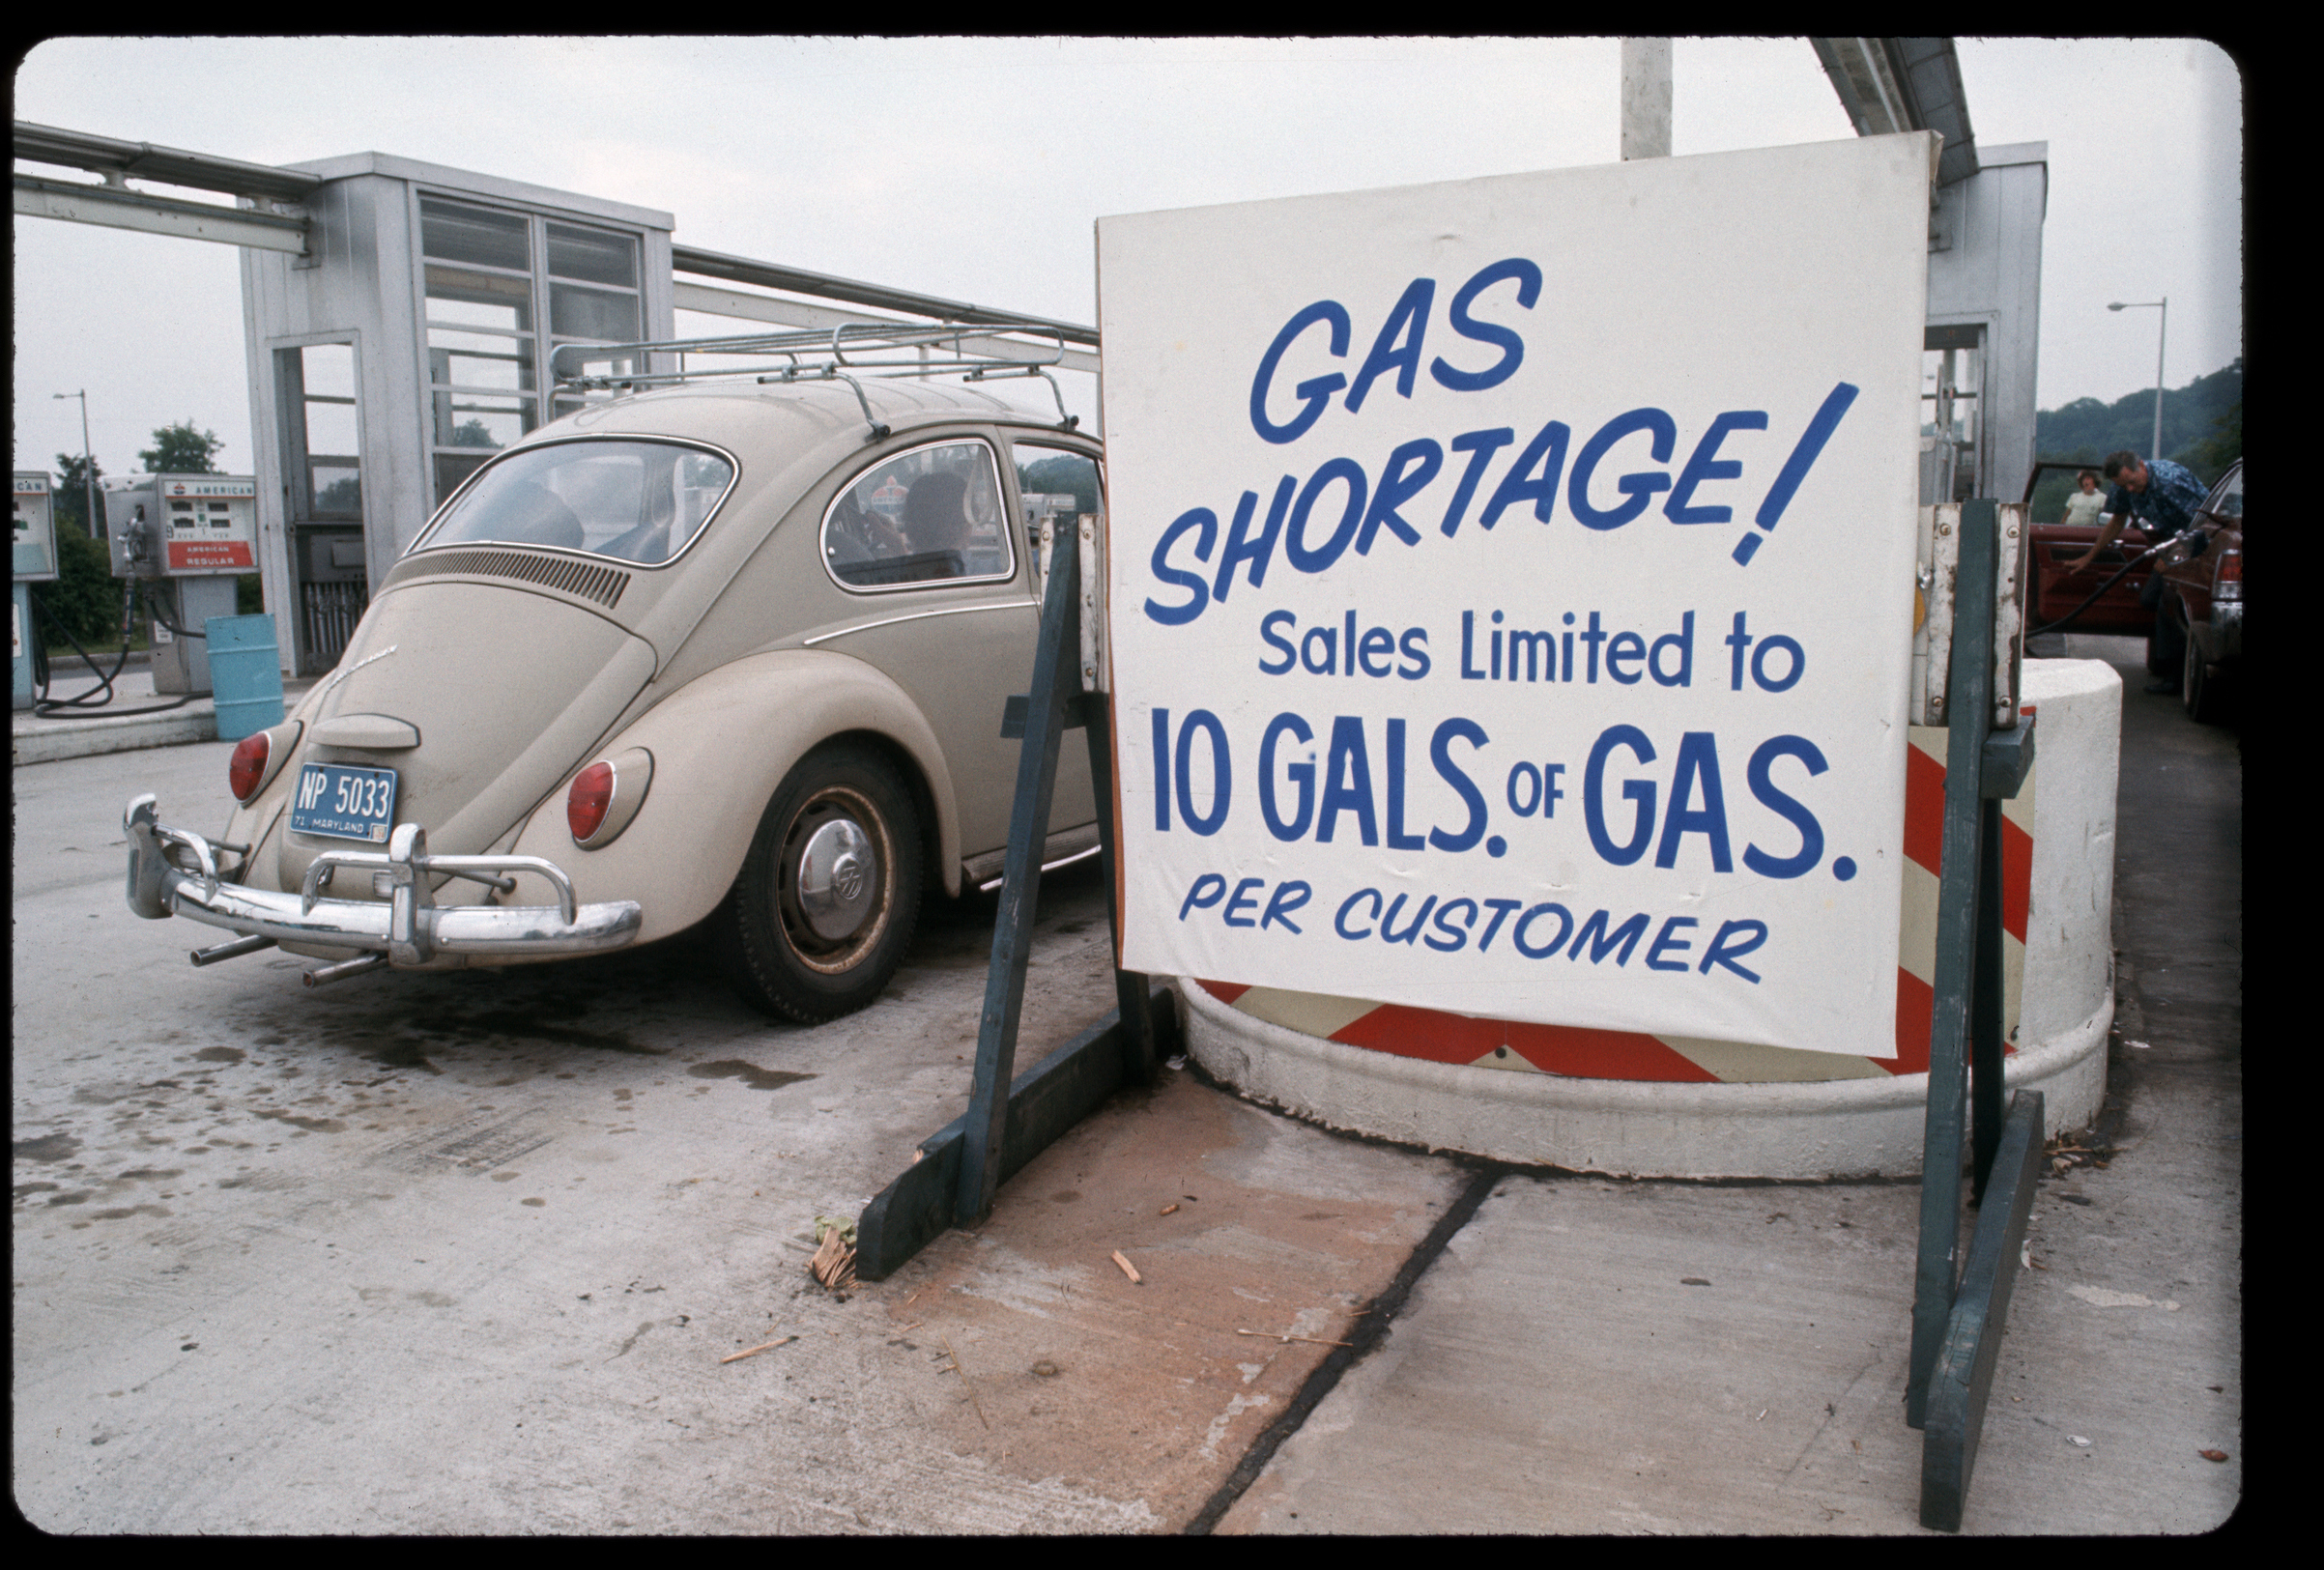 A sign at a gas station during the gasoline shortage and energy crisis of the 1970s